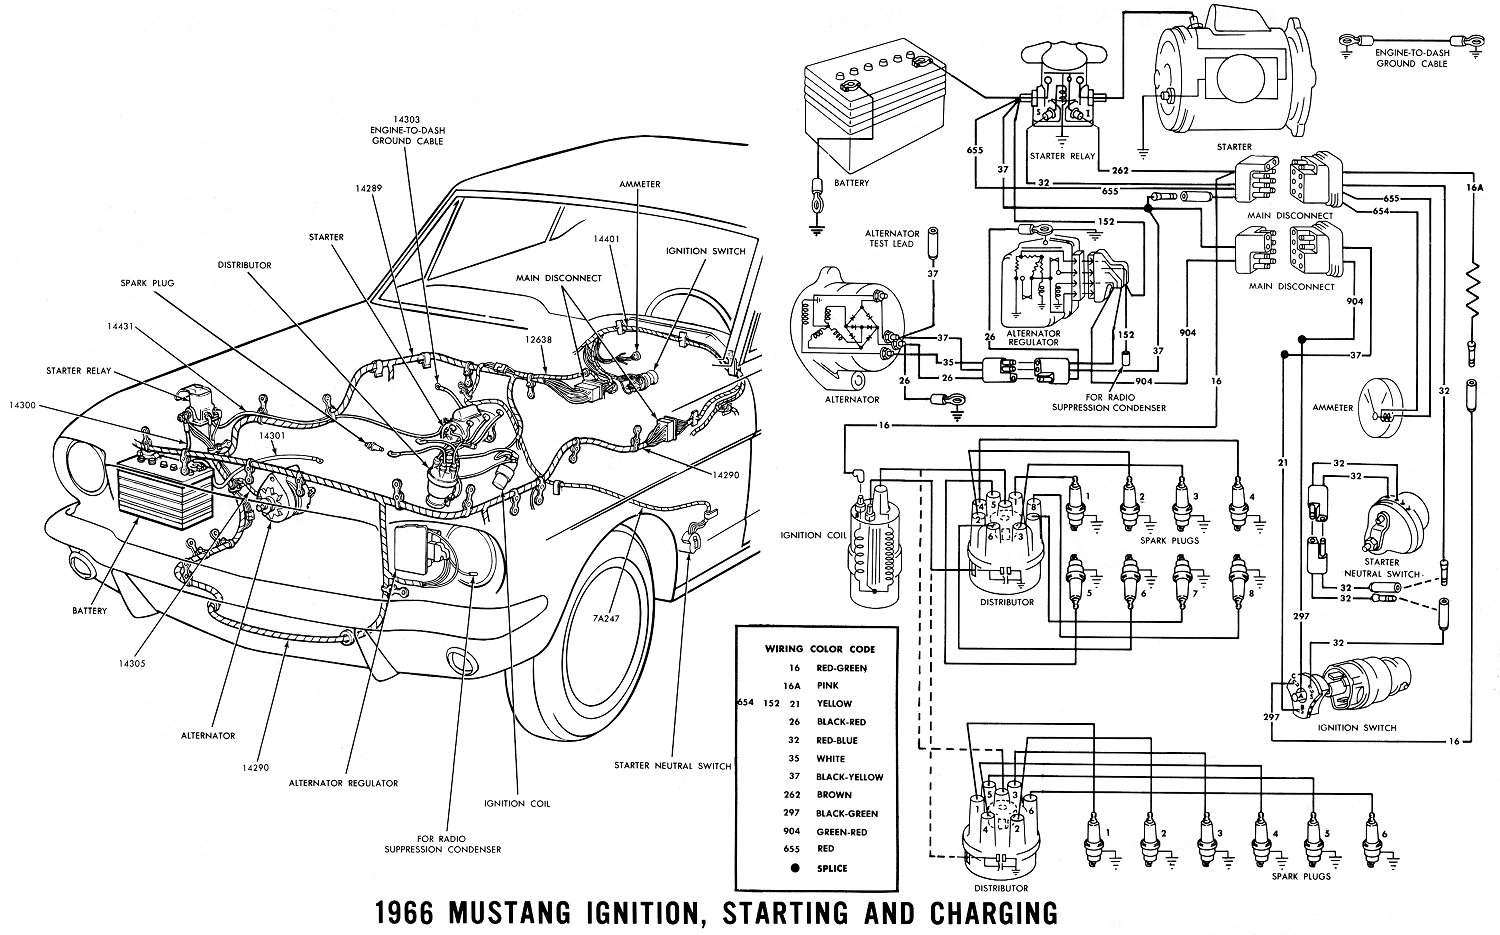 1998 Ford Mustang Engine Diagram Archive Of Automotive Wiring Co Diagrams 1966 V8 Electrical Schematics Rh Glenifferagility Uk